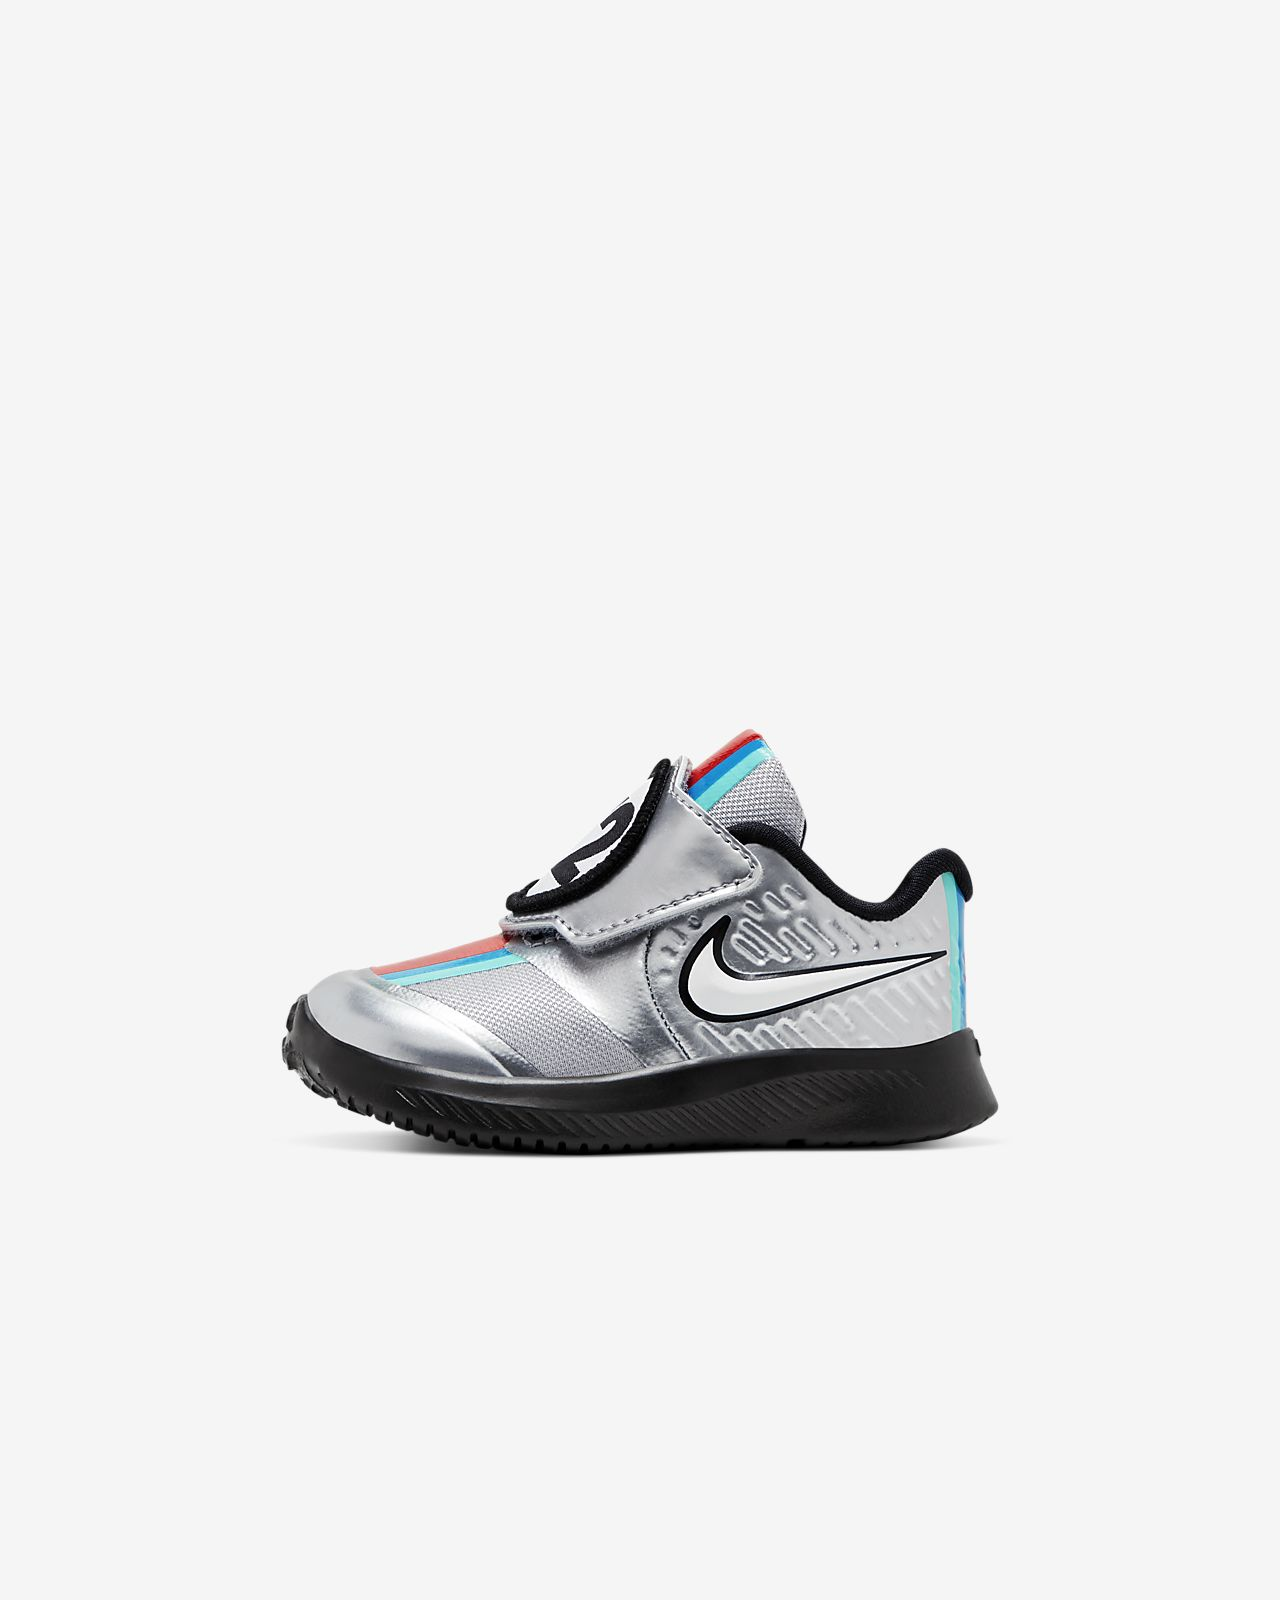 Nike Star Runner 2 Auto Baby/Toddler Shoe